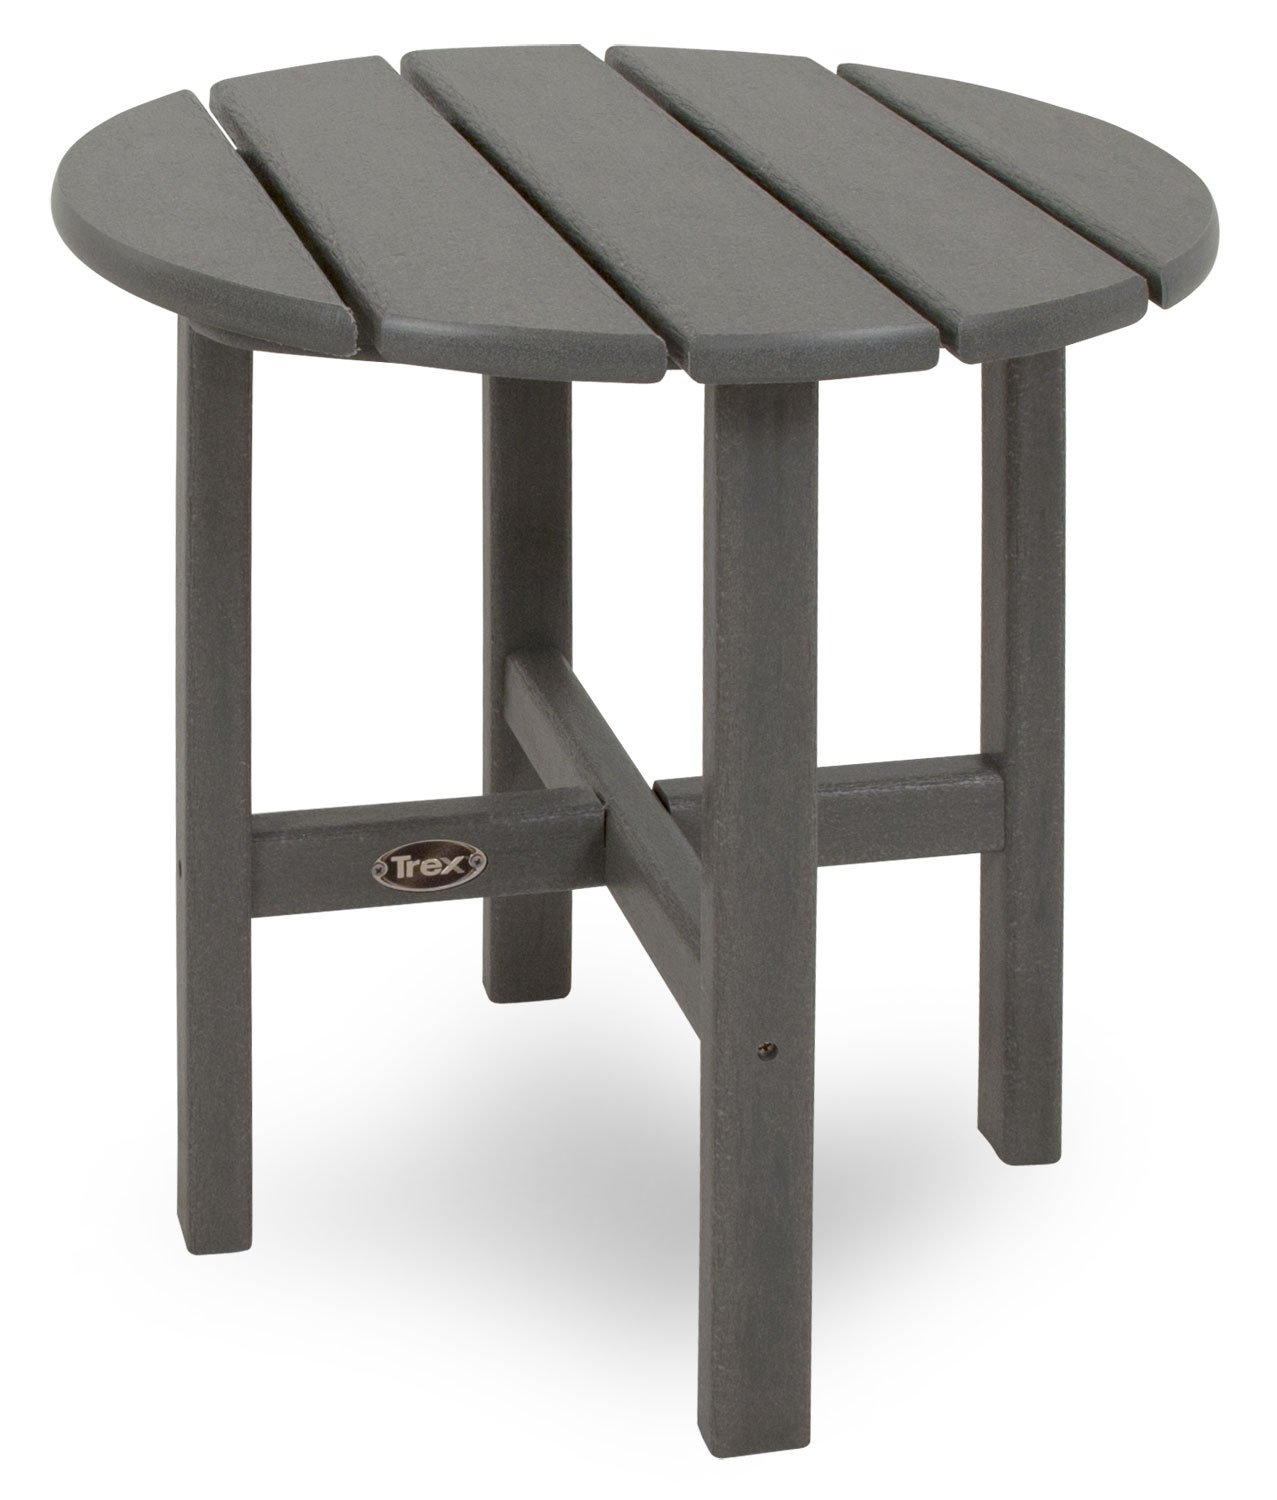 Trex Outdoor Furniture Cape Cod Round 18-Inch Side Table, Stepping Stone by Trex Outdoor Furniture by Polywood